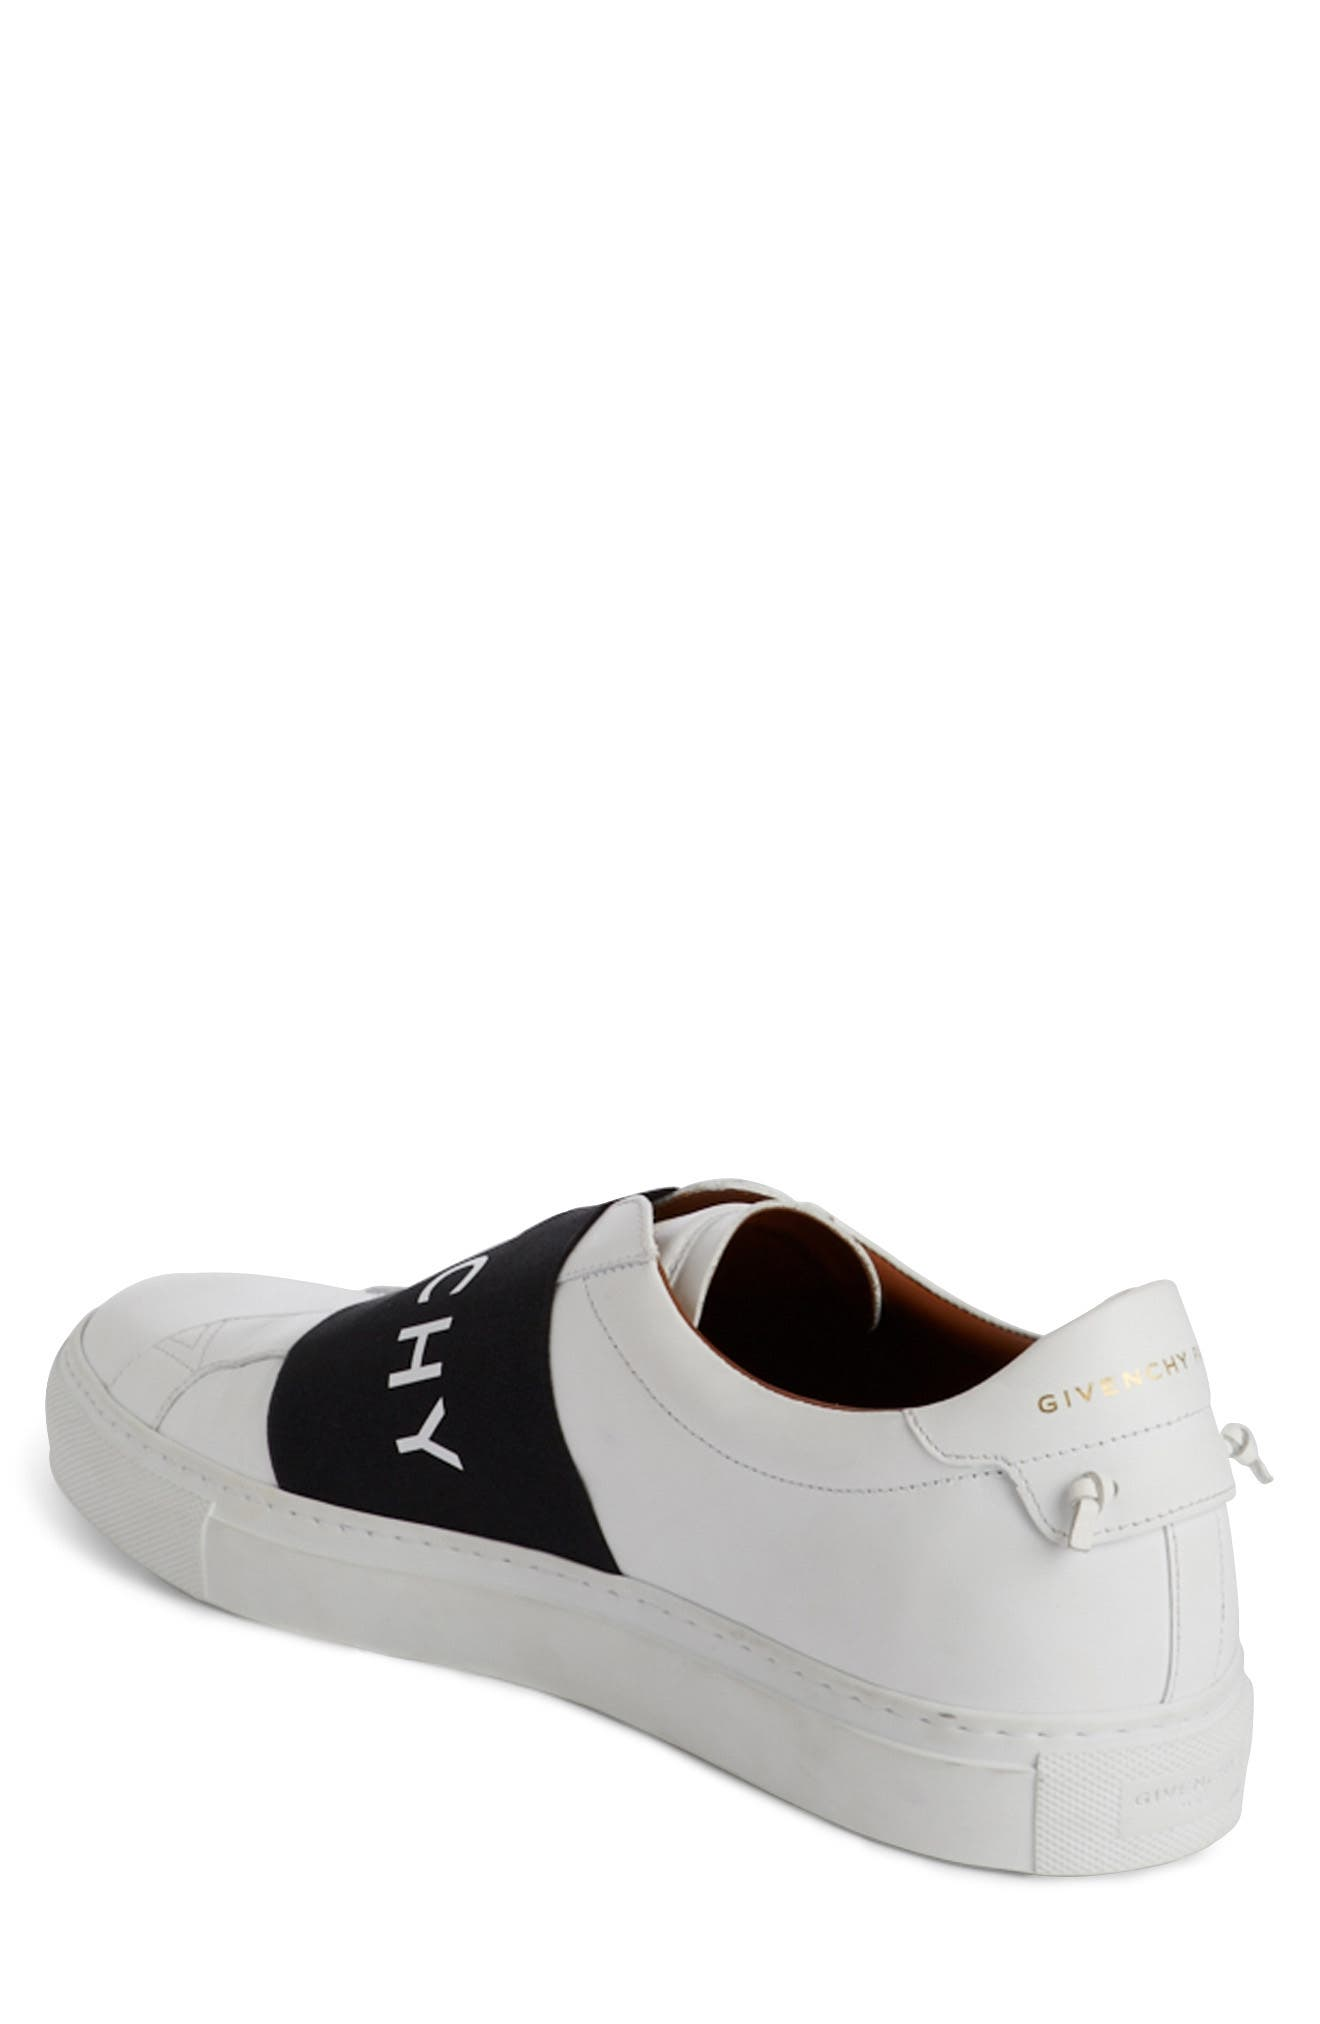 Alternate Image 2  - Givenchy Logo Strap Slip-On Sneaker (Women)